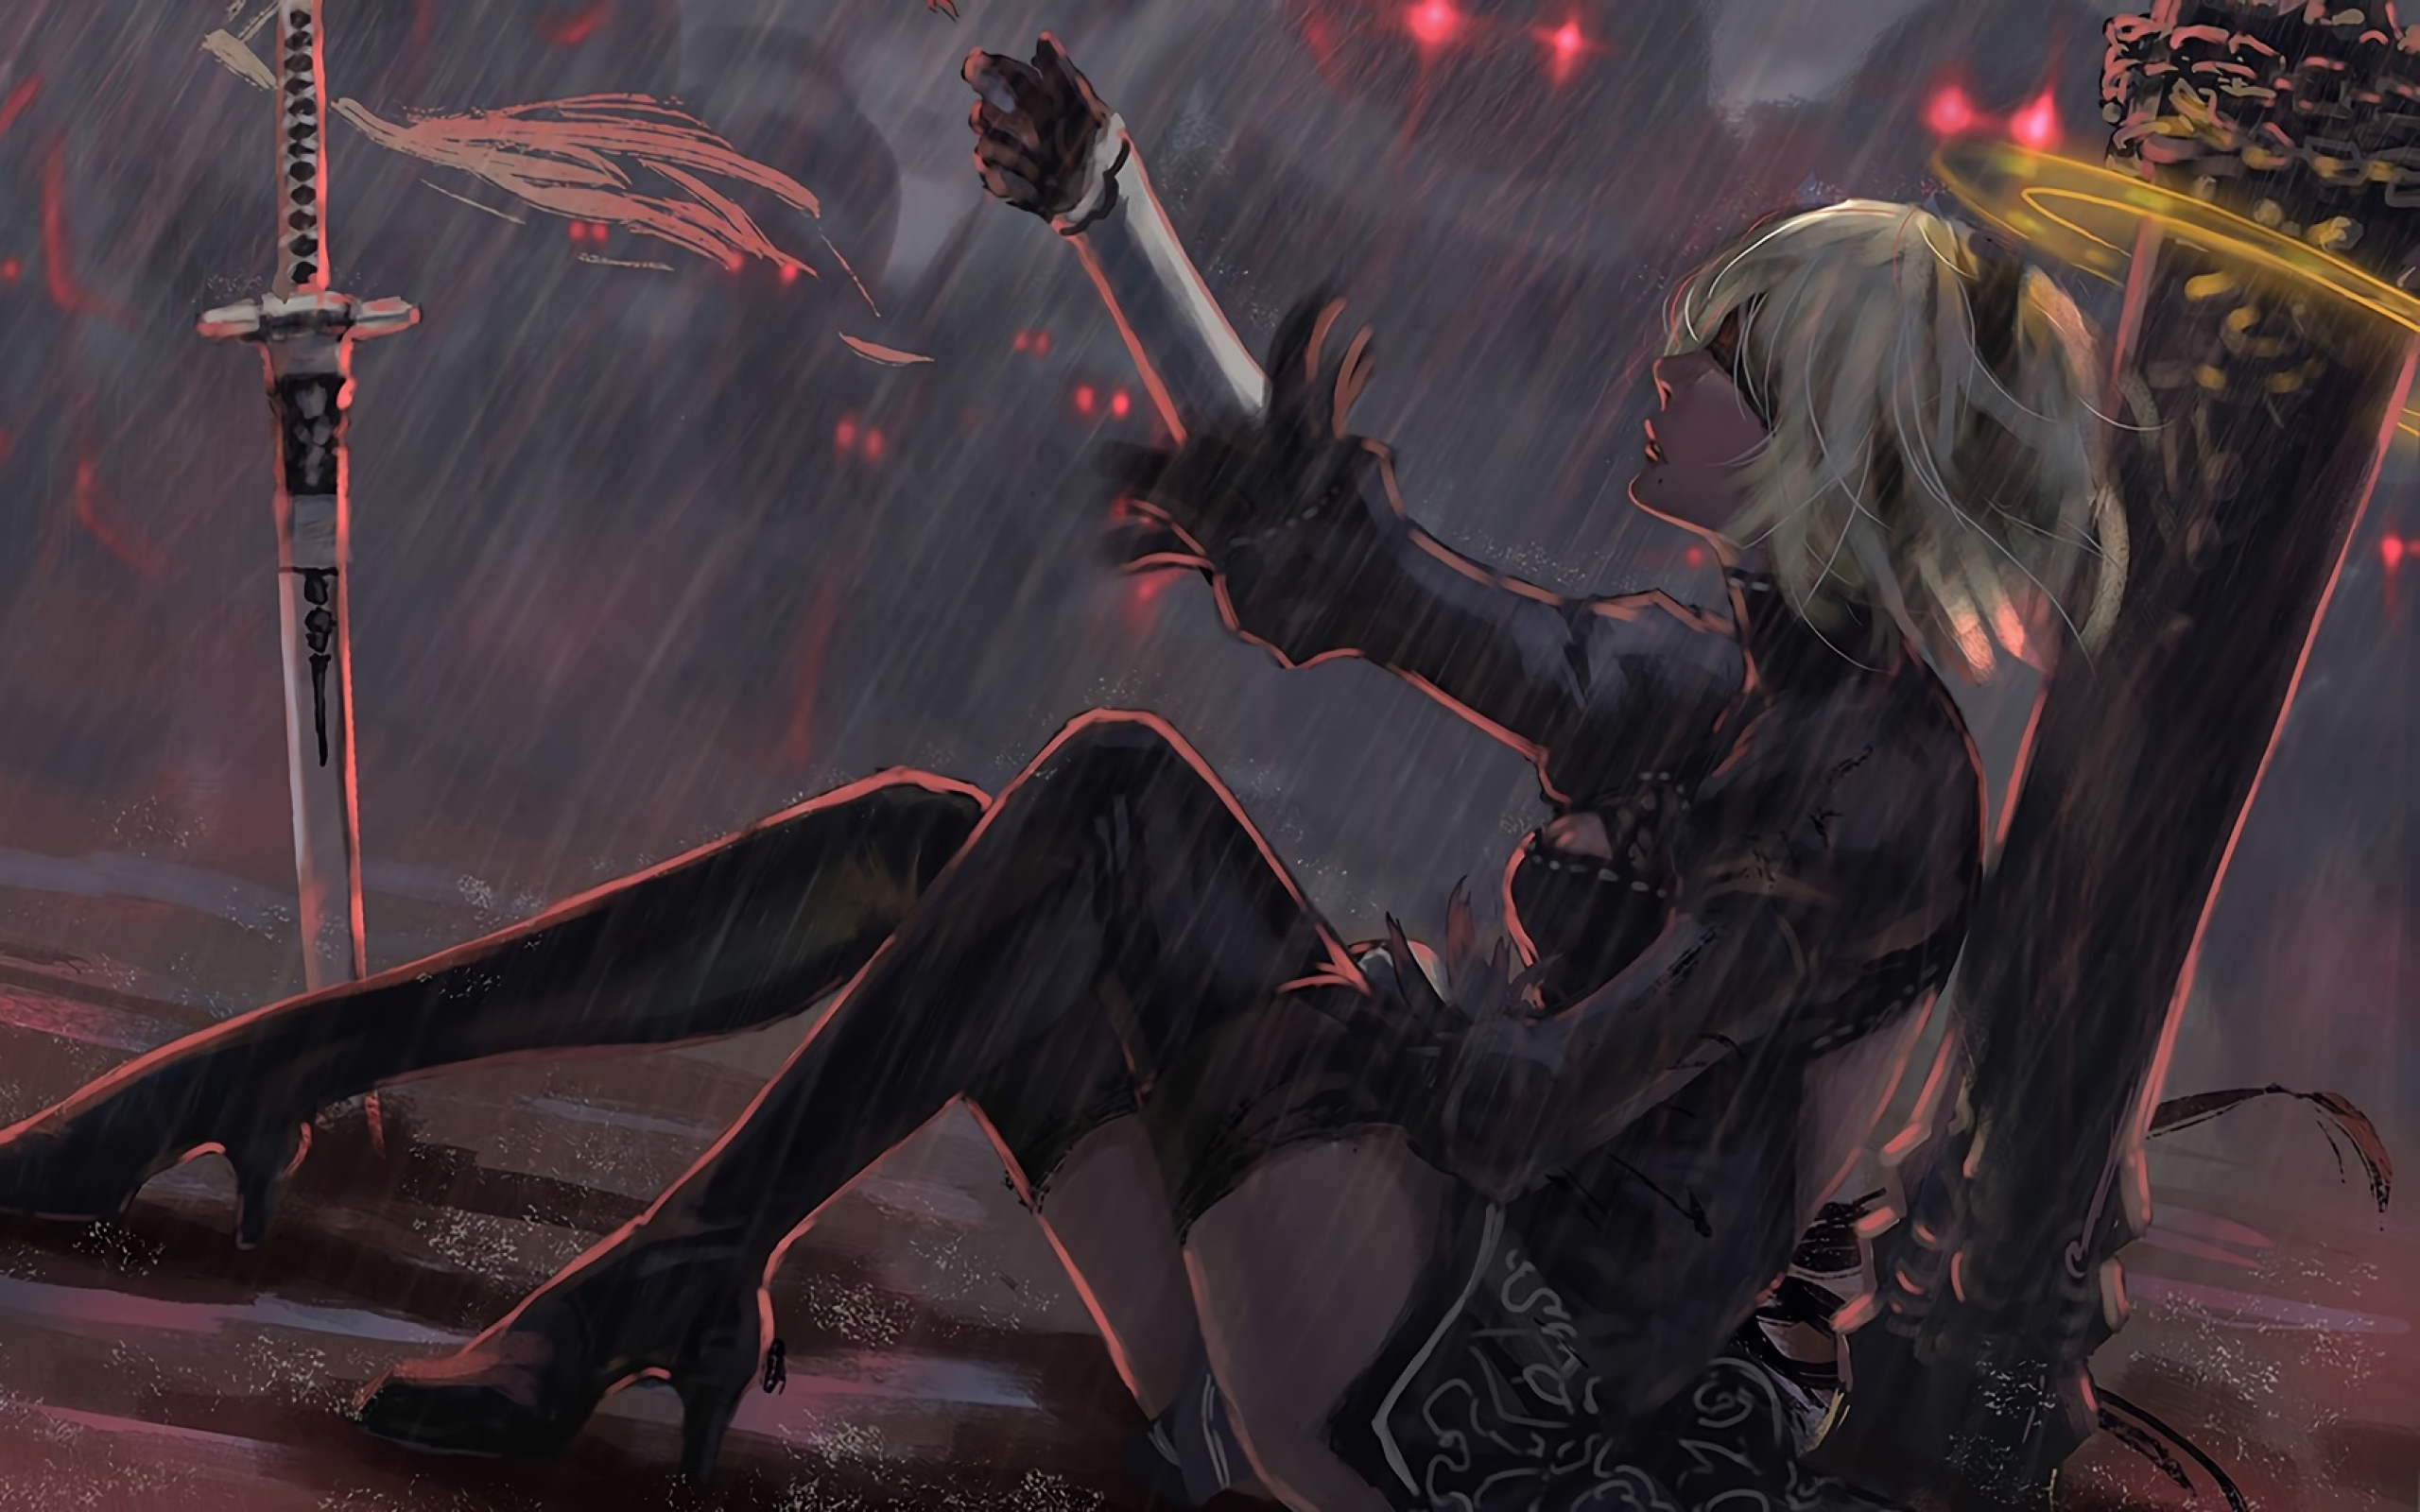 Nier Automata Fan Art Wallpaper 01 1920x1080: Nier Automata Fantasy Game Art, Full HD Wallpaper